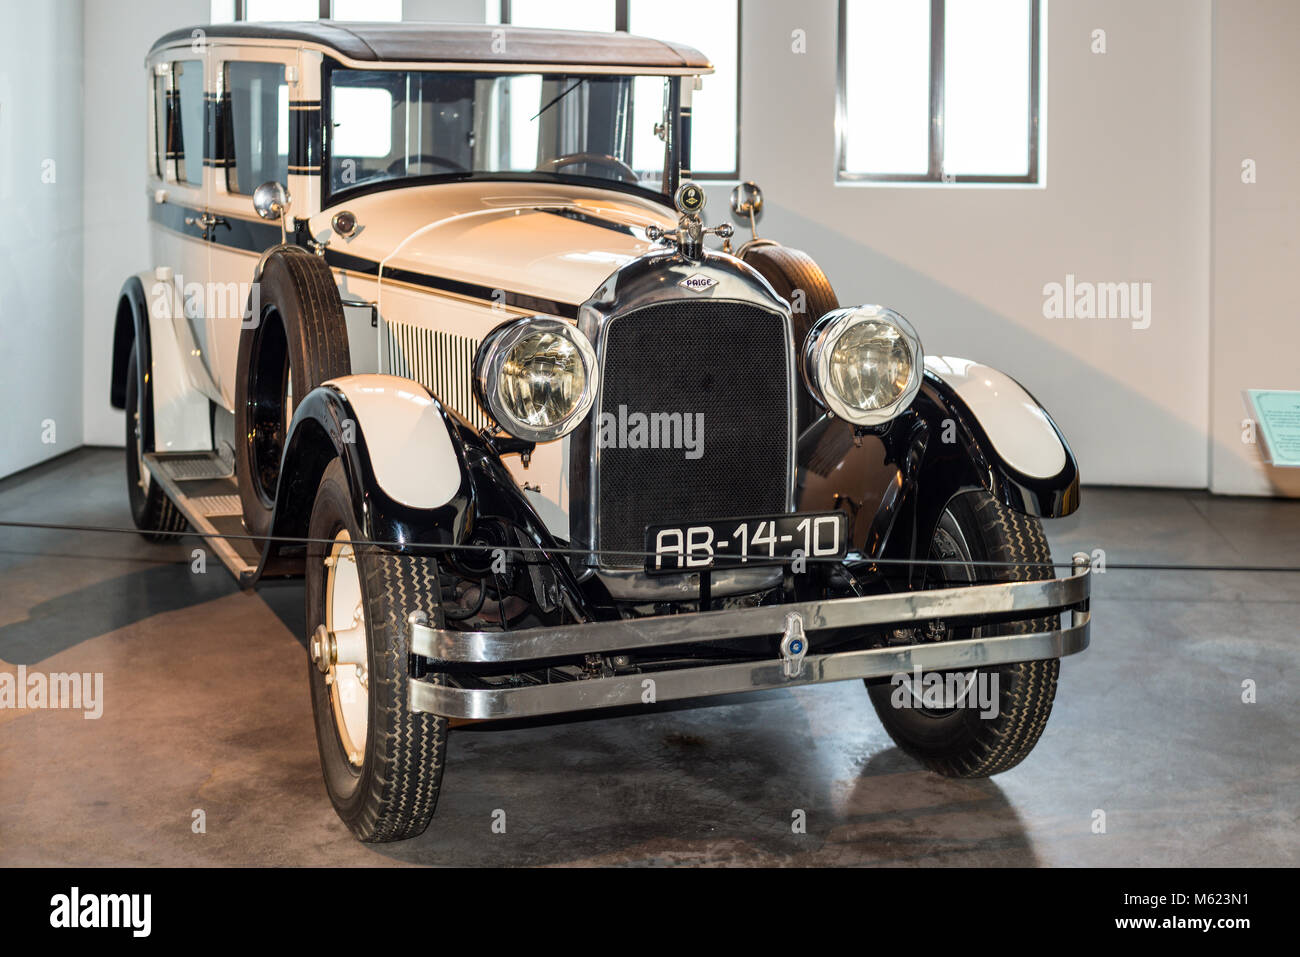 Malaga, Spain - December 7, 2016: Vintage 1927 Cavalier Graham-Paige USA car displayed at Malaga Automobile and - Stock Image